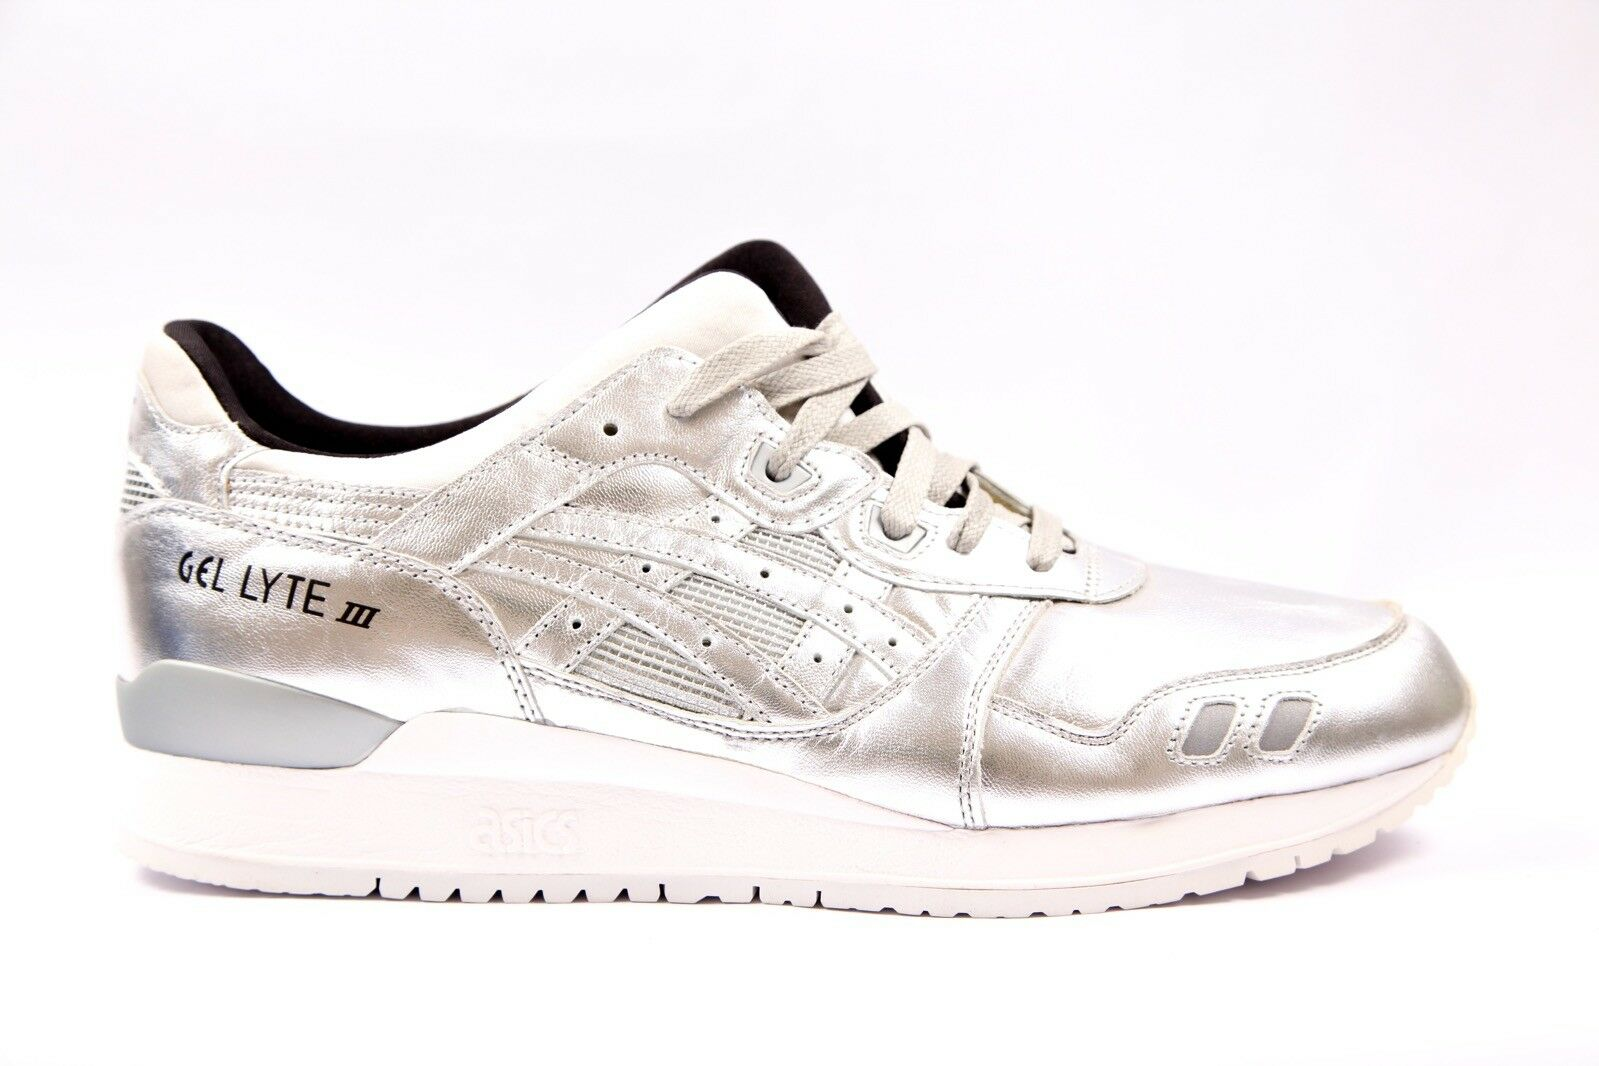 Mens Womens Asics Gel Lyte III Silver HL504 9393 Lace Up Casual Trainers